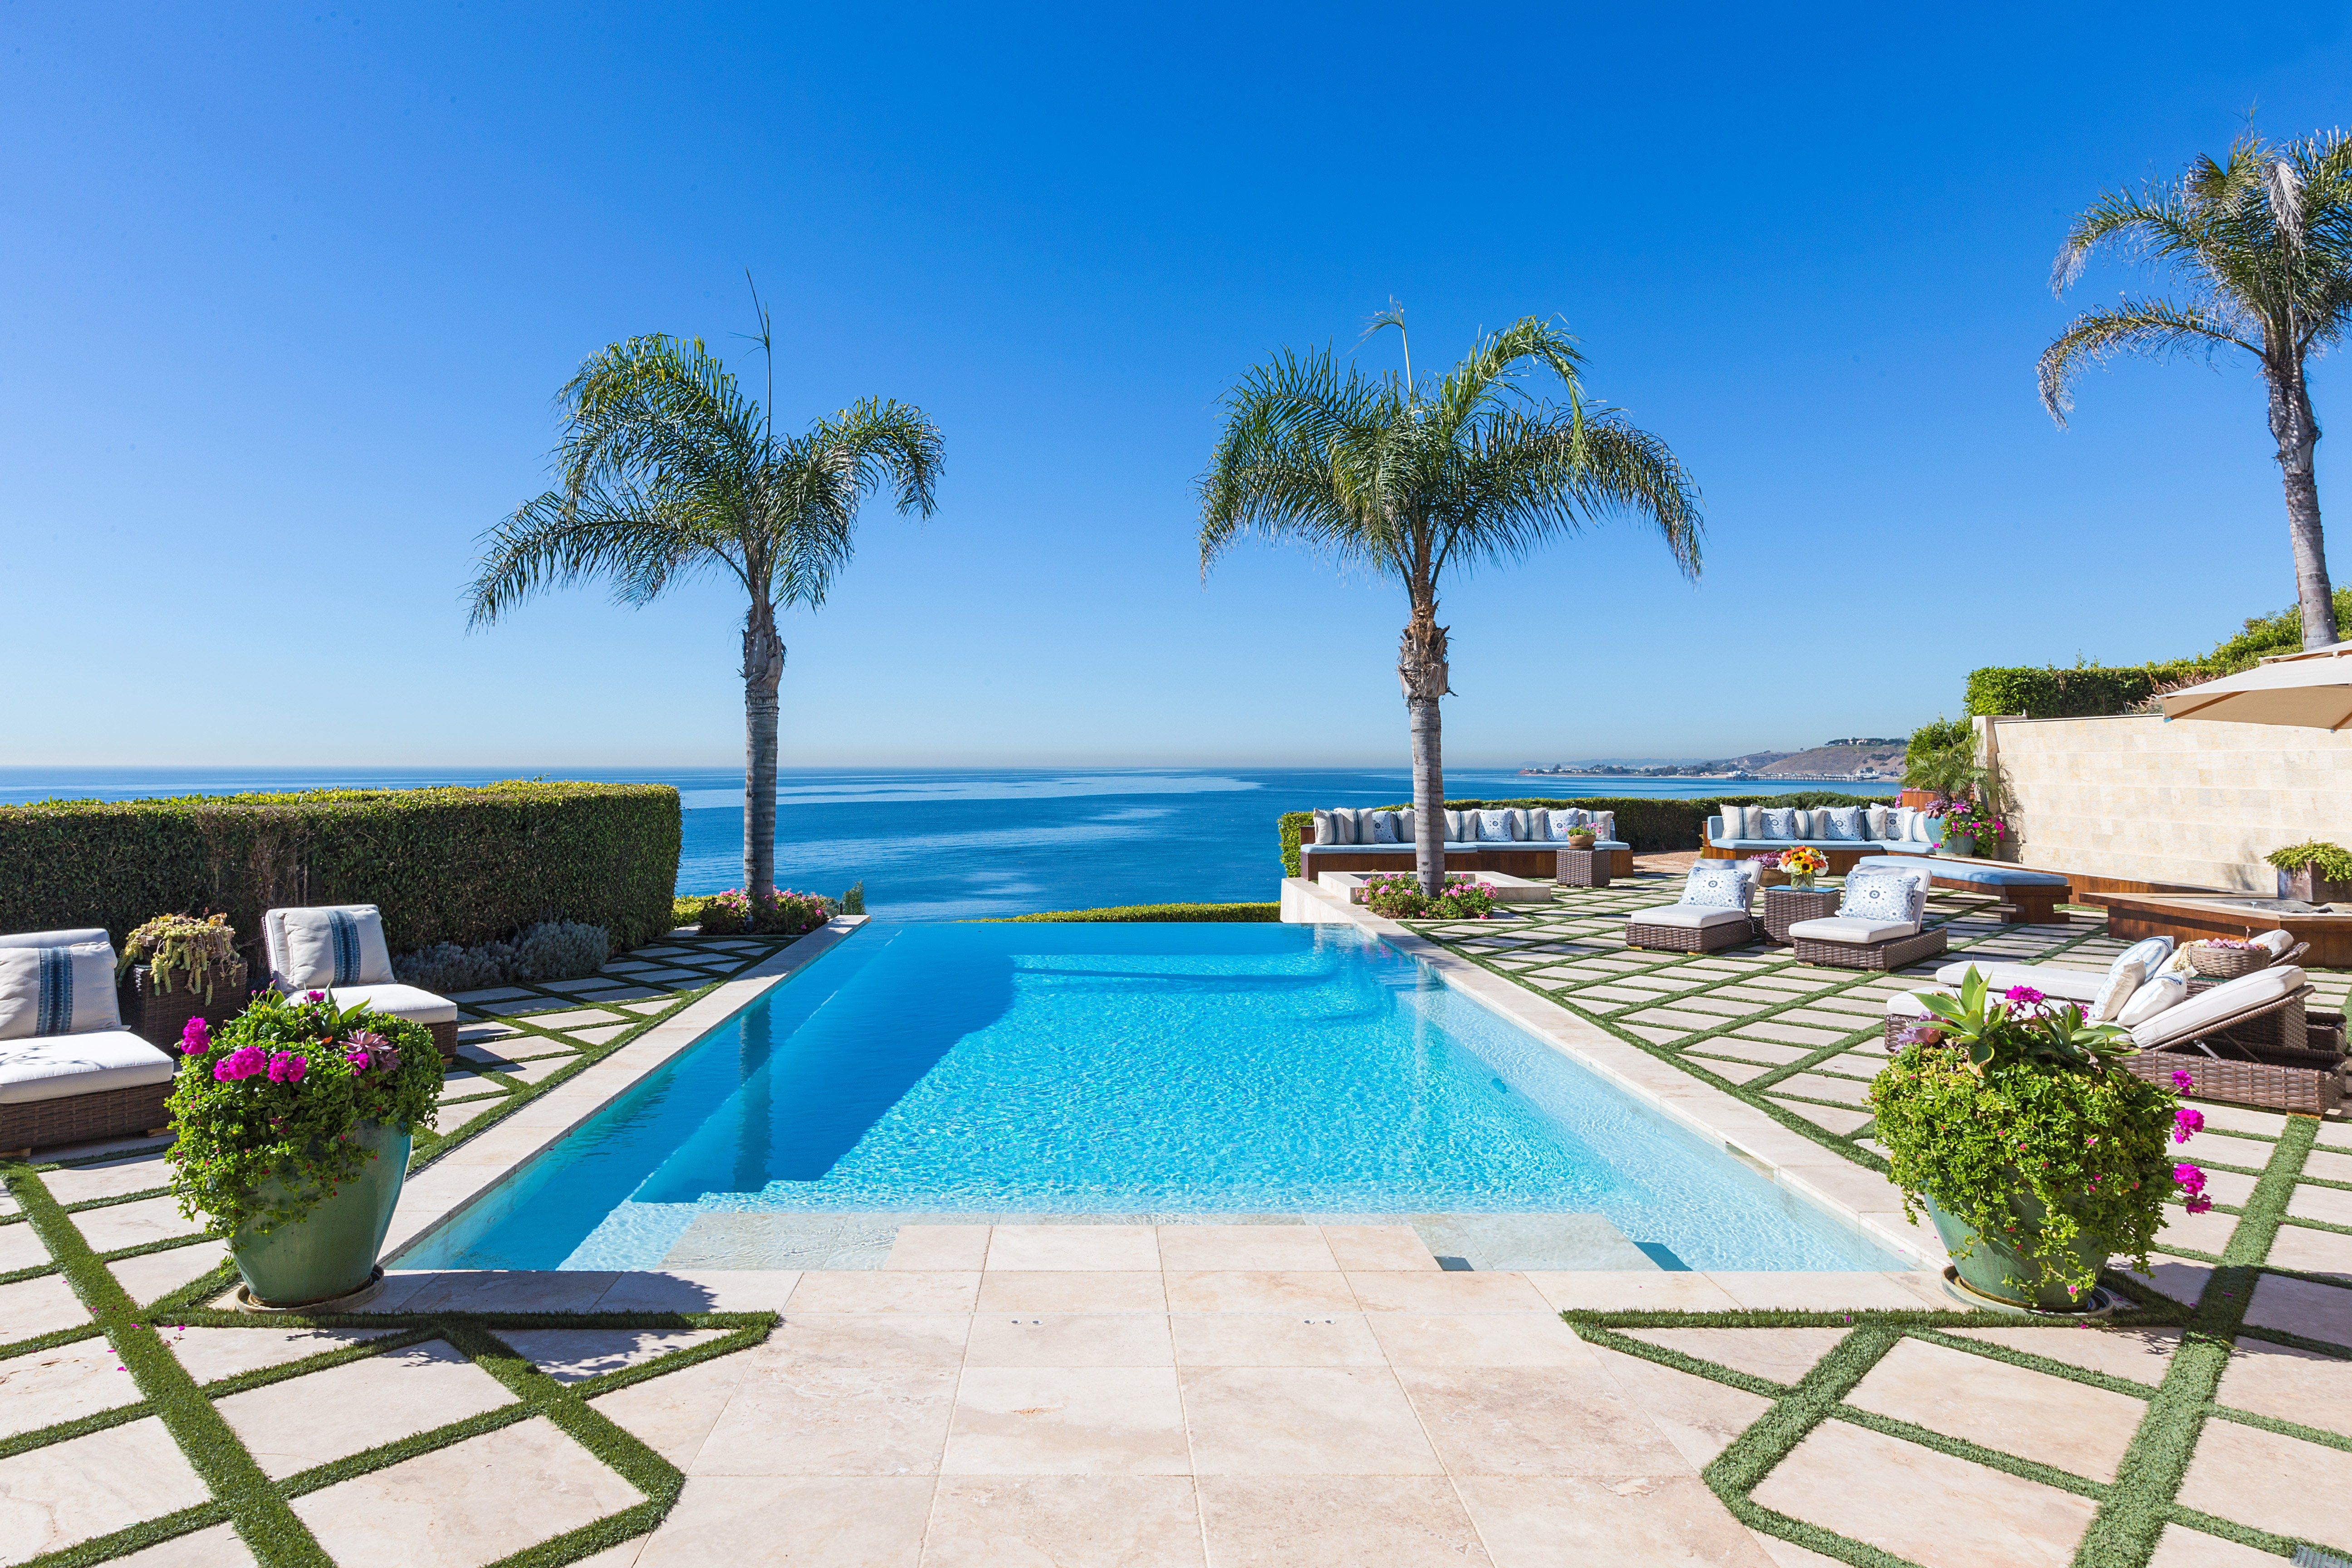 Malibu Home Of The Real Housewives Of Beverly Hills Yolanda And David Foster Sells For 19 Million Malibu Homes Malibu Mansion Foster House